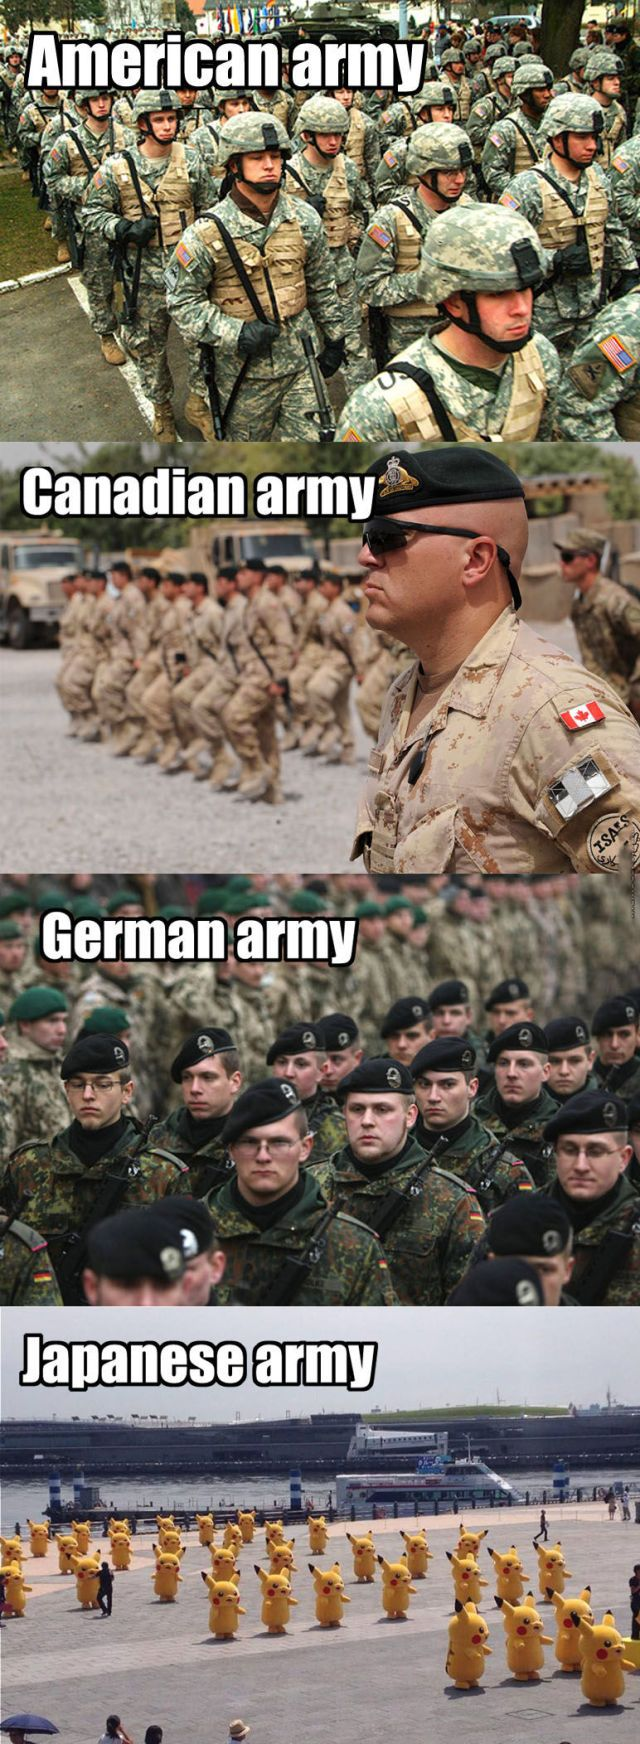 Armies from various nations